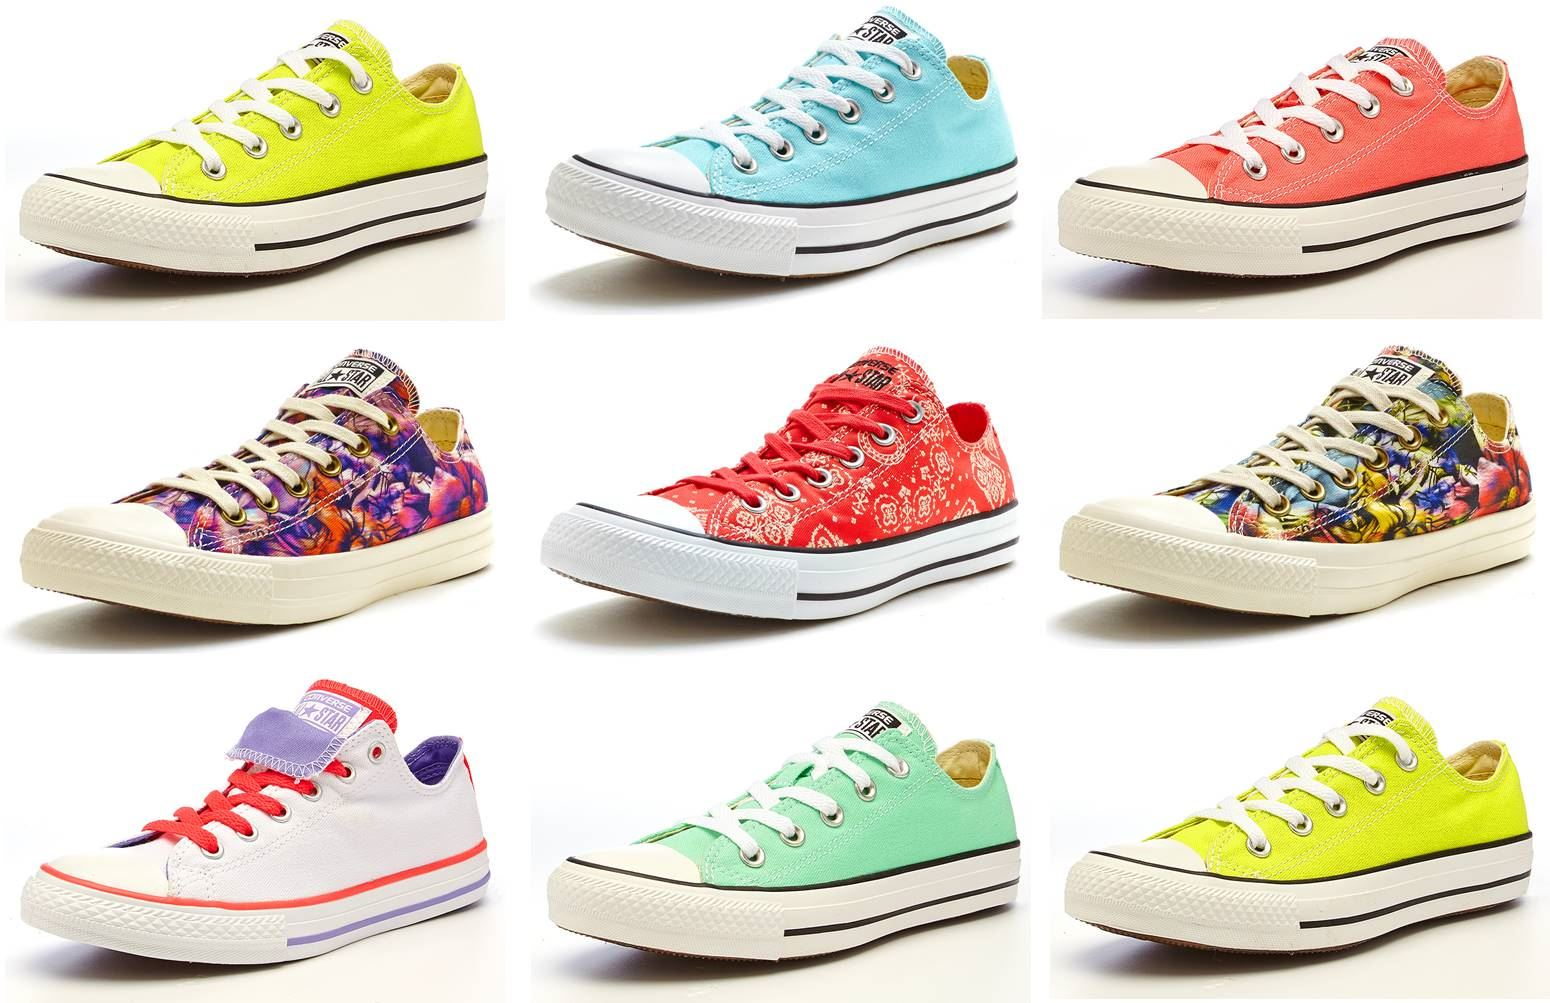 Fundegue De es Colores Zapatos Converse qUTnwPxBOX